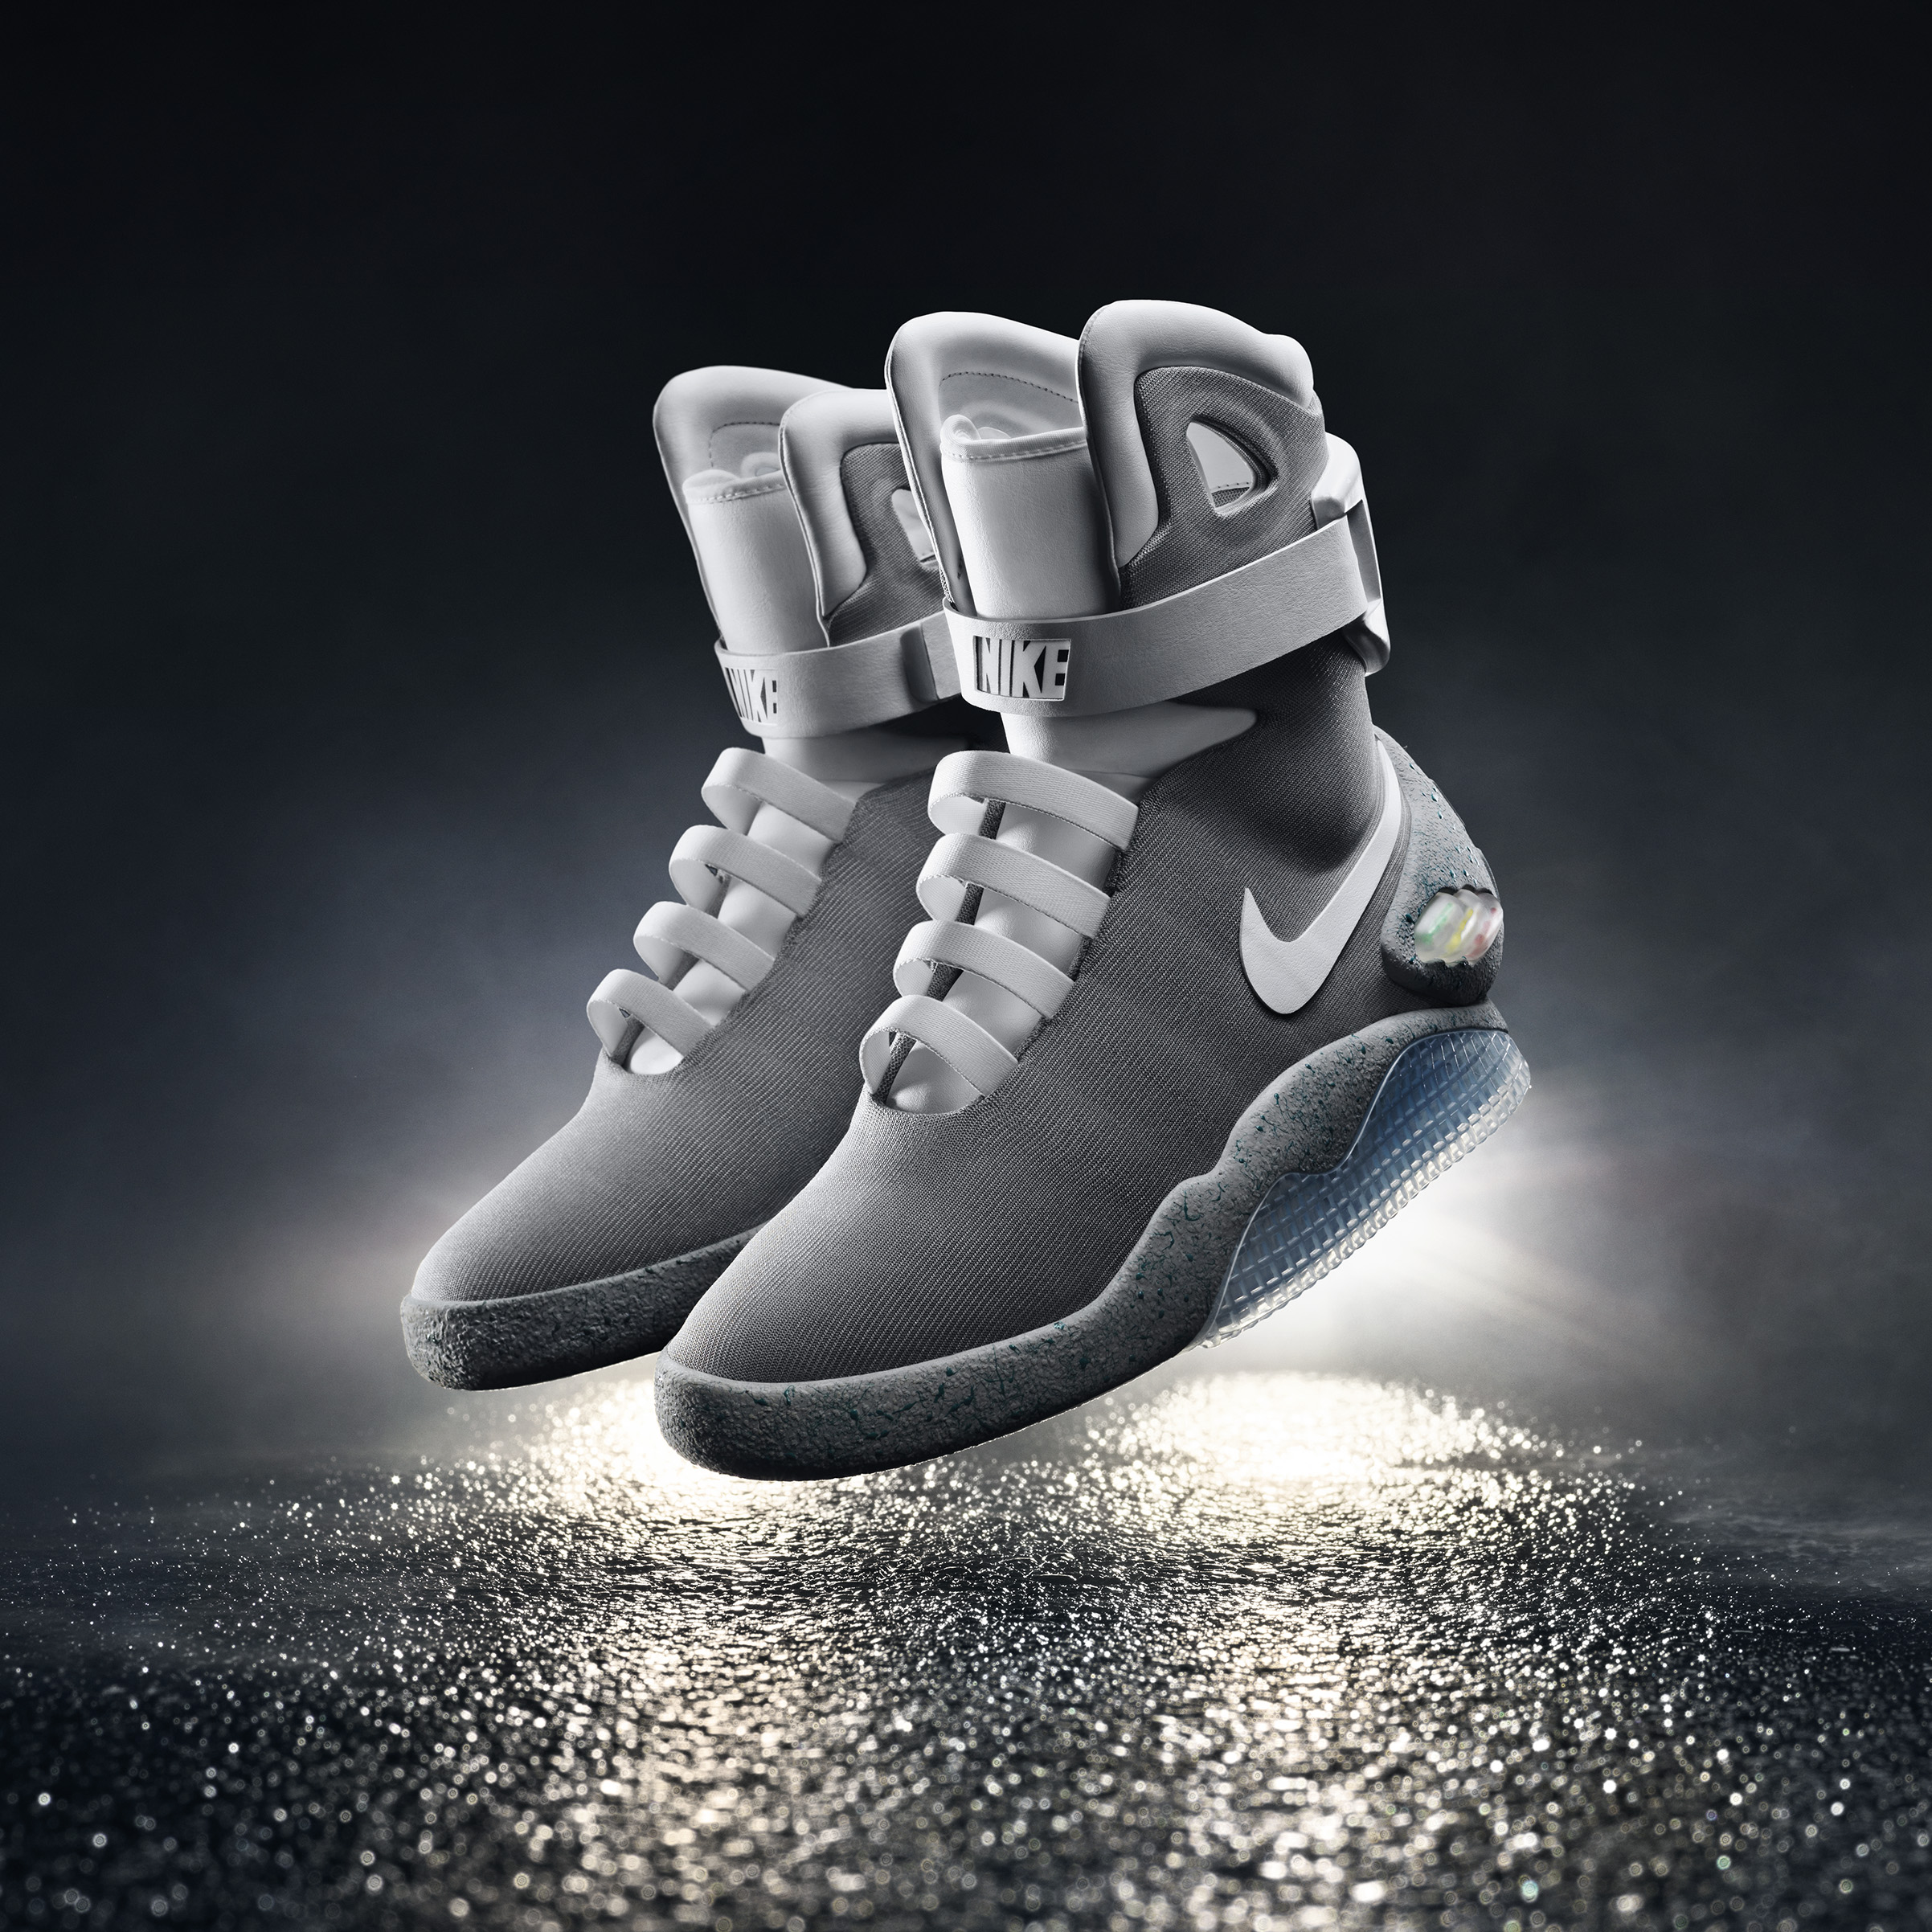 new nike shoes high tops